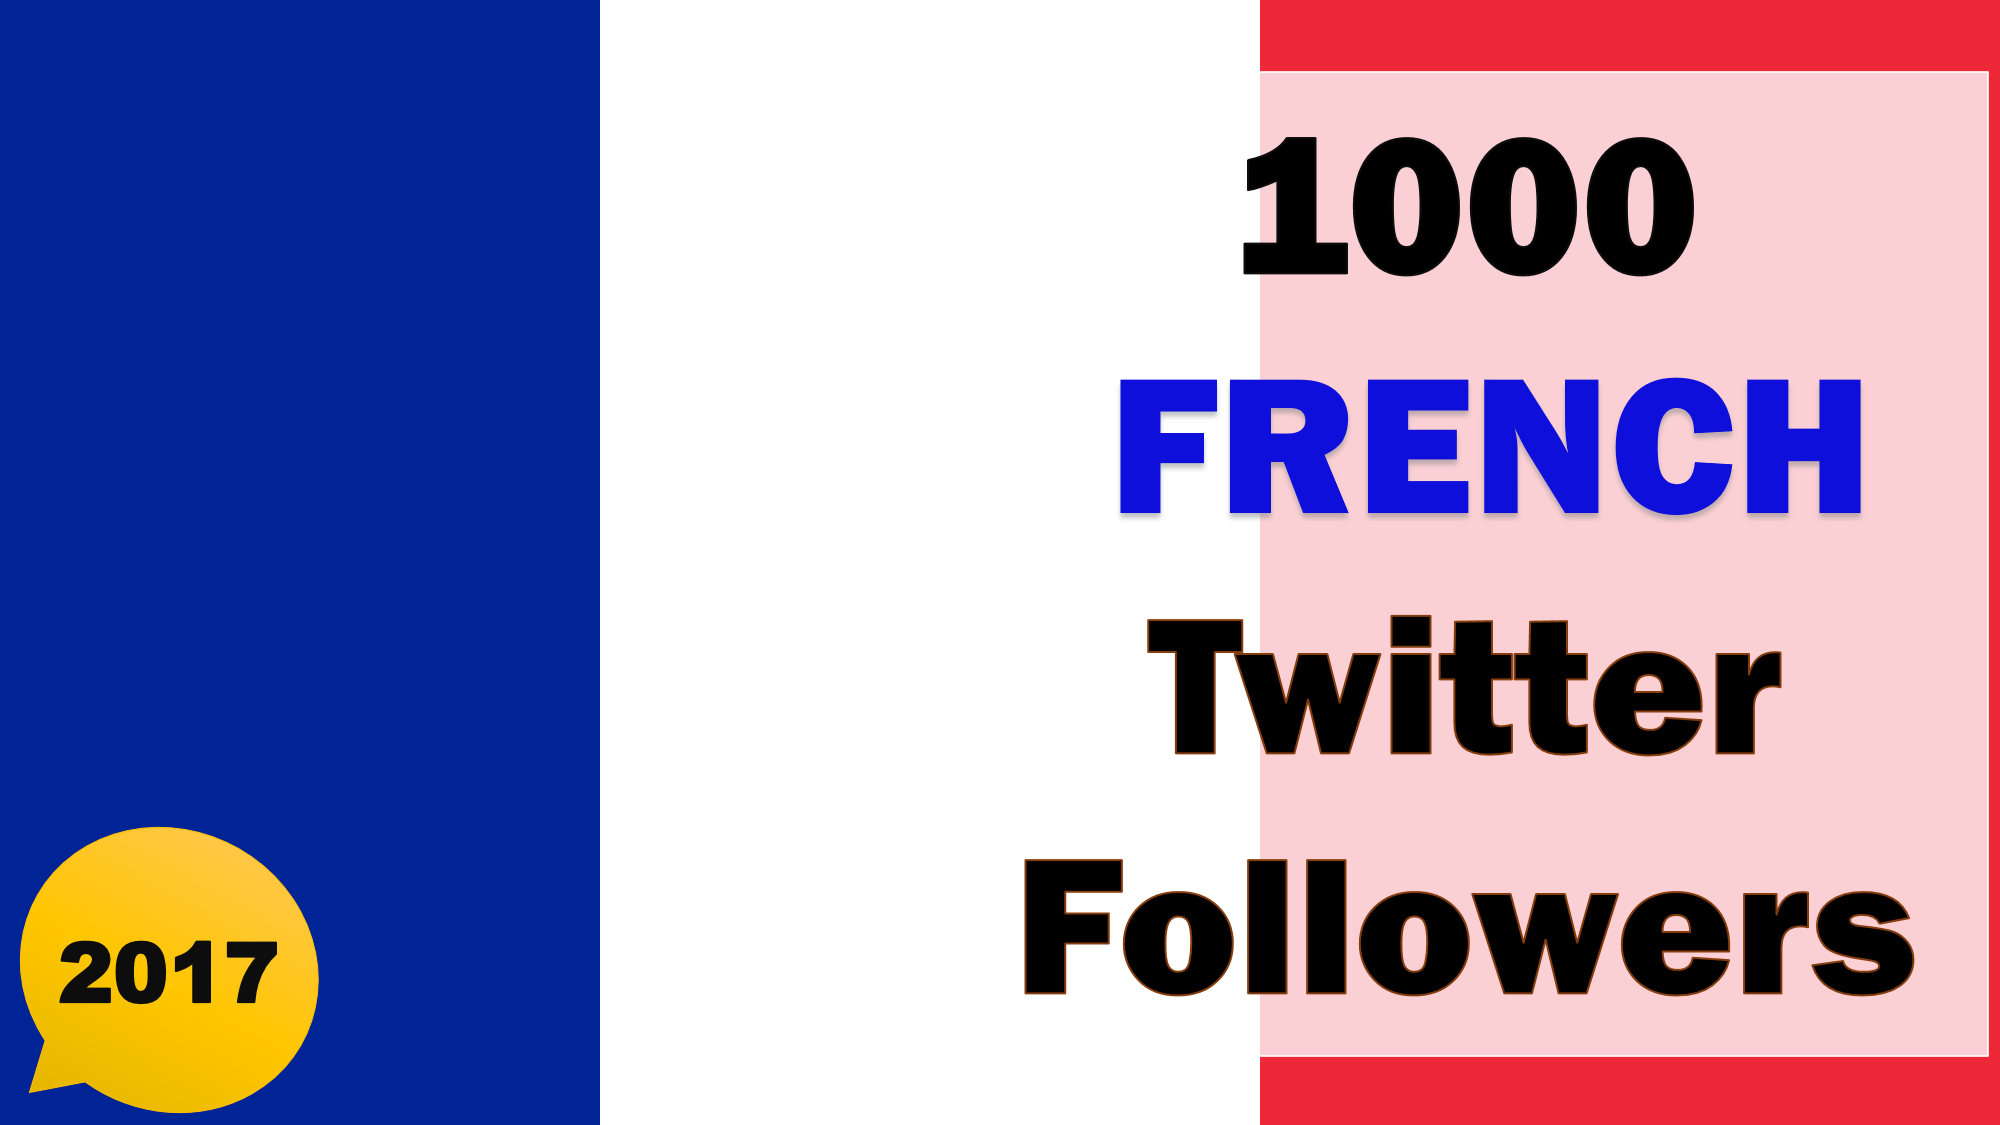 Promote and Provide 1000 French Twitter Followers